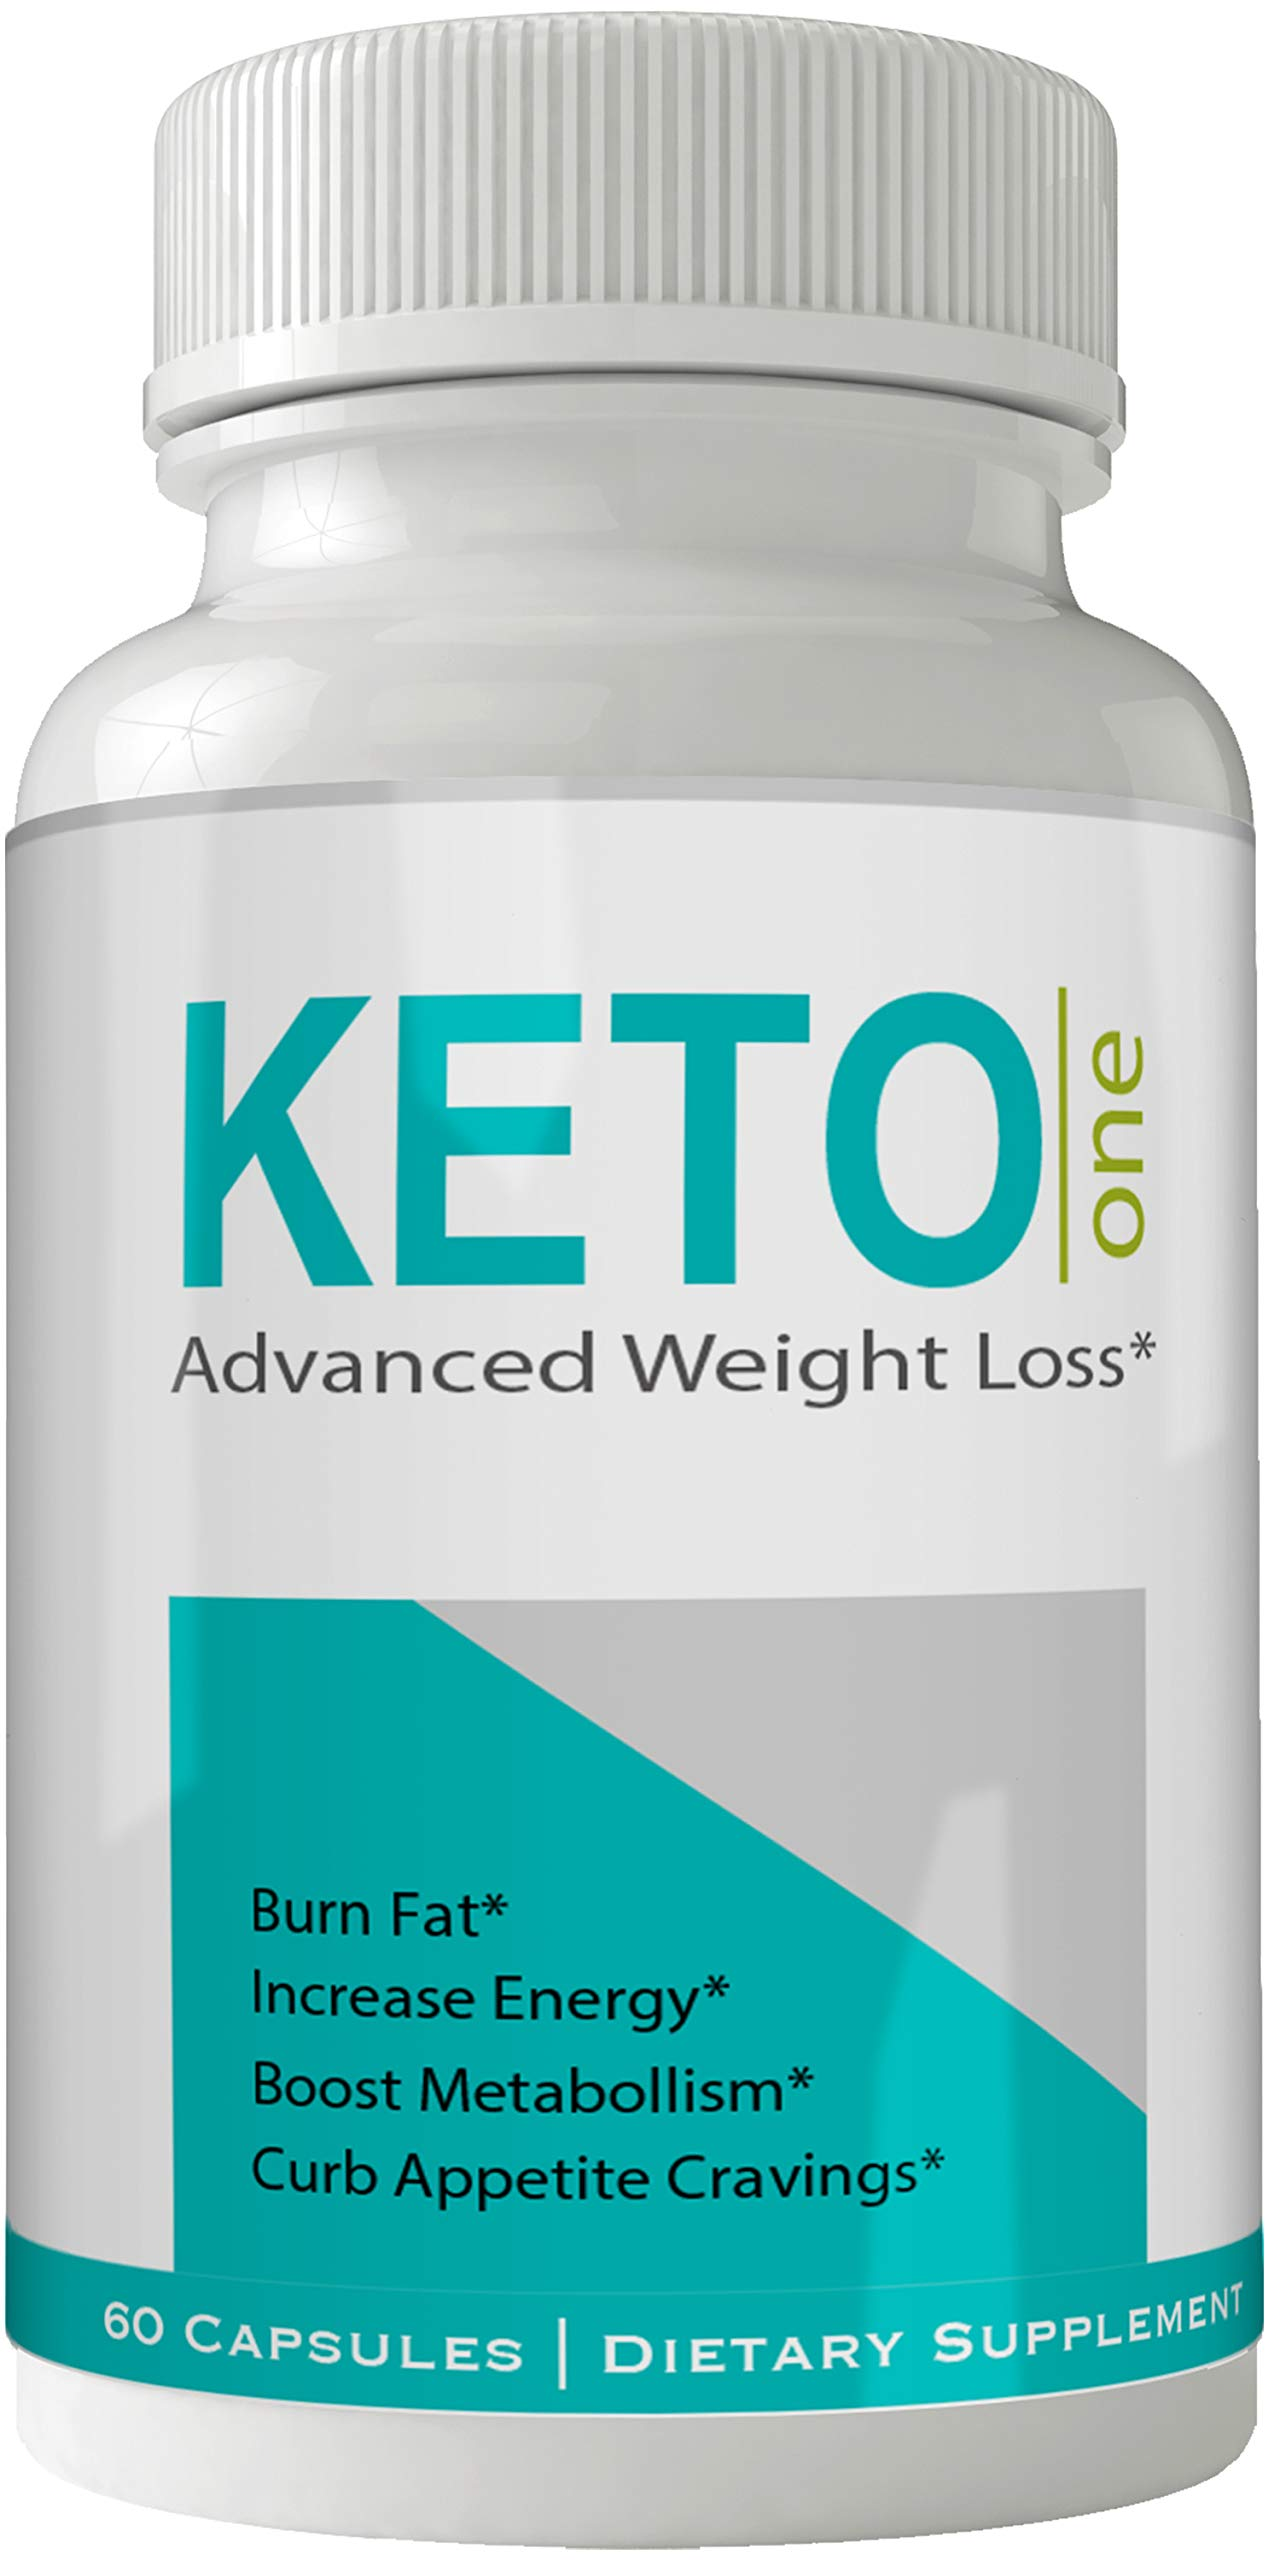 Keto One Diet Pills Advance Weight Loss Supplement Appetite Suppressant Natural Ketogenic 800 mg Formula with BHB Salts Ketone Diet Capsules to Boost Metabolism, Energy and Focus ... by nutra4health LLC